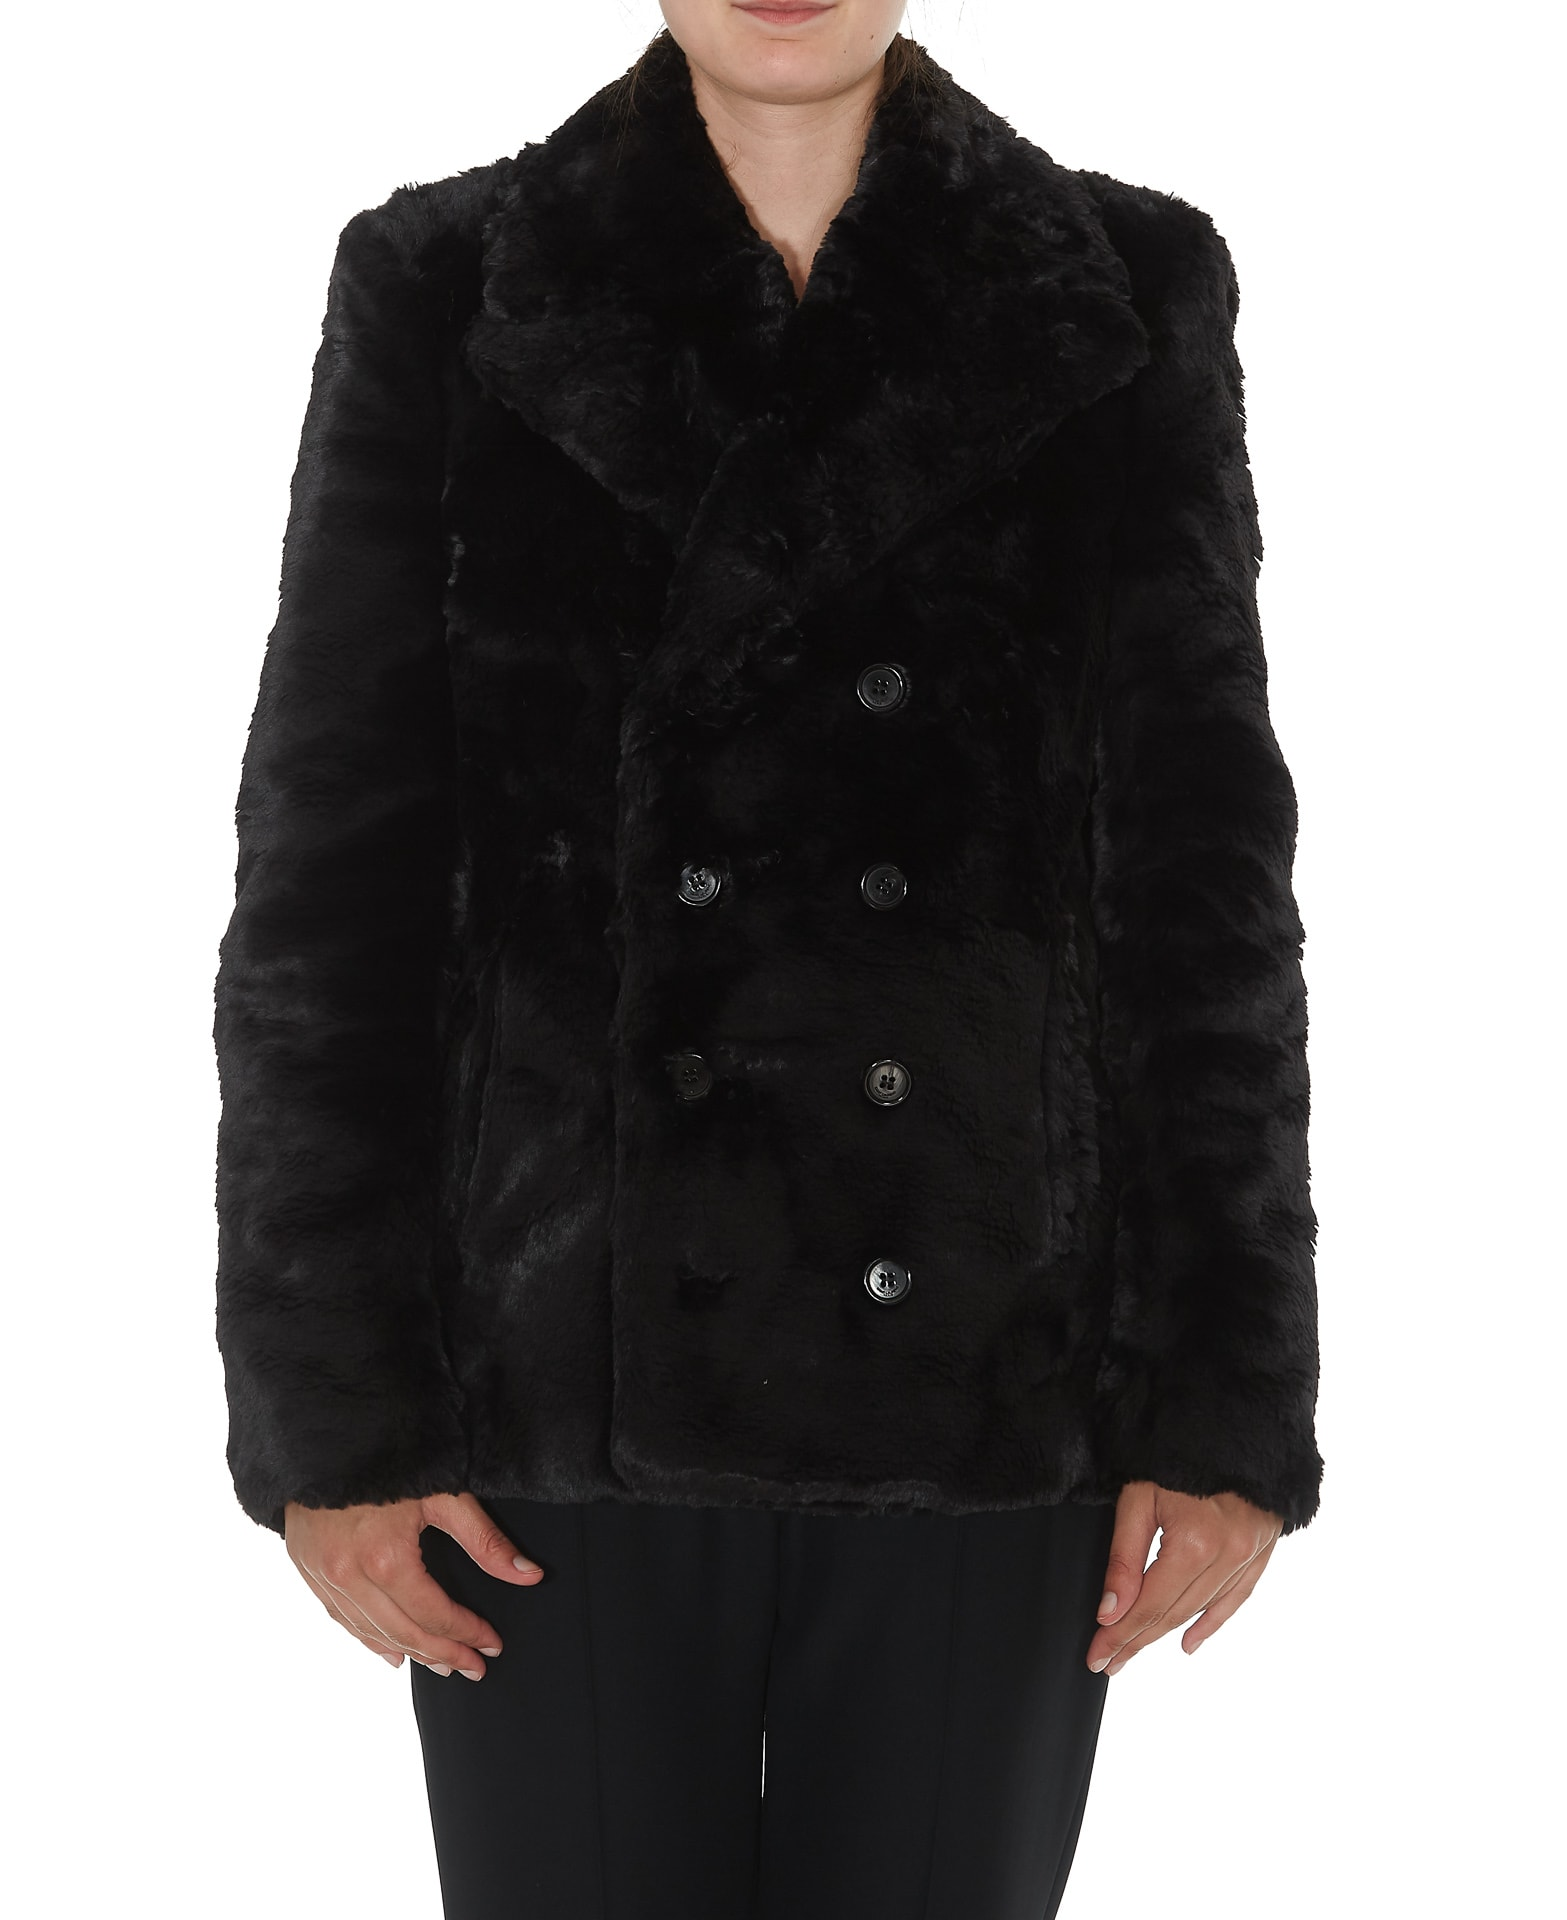 Saint Laurent Faux Fur Pea Coat